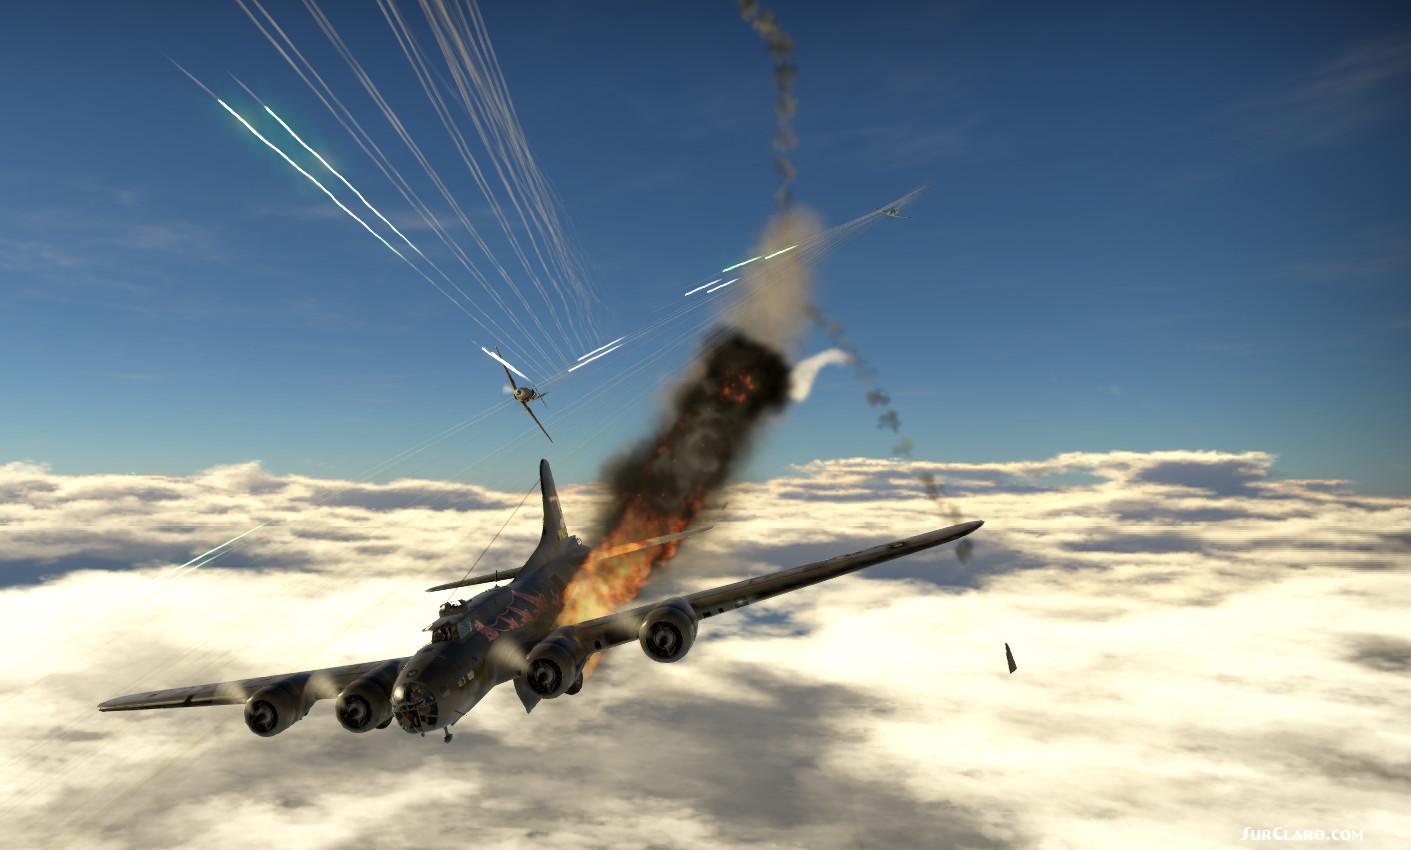 Boeing B-17 Flying Fortress being attacked by a BF109 and a FW190 over Norway skies - Photo 18835